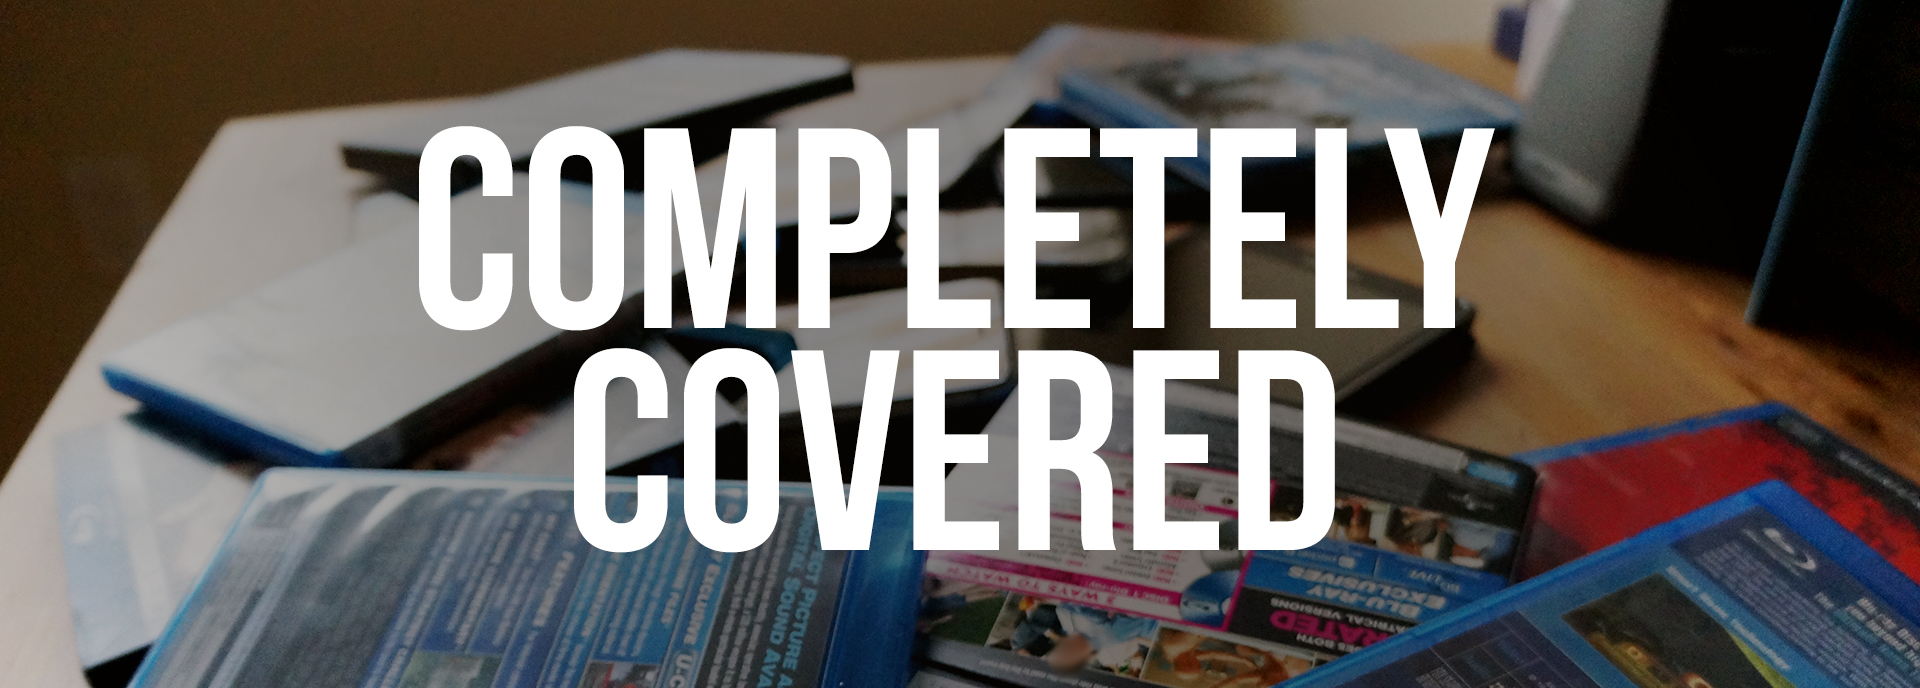 COMPLETELY_COVERED_02